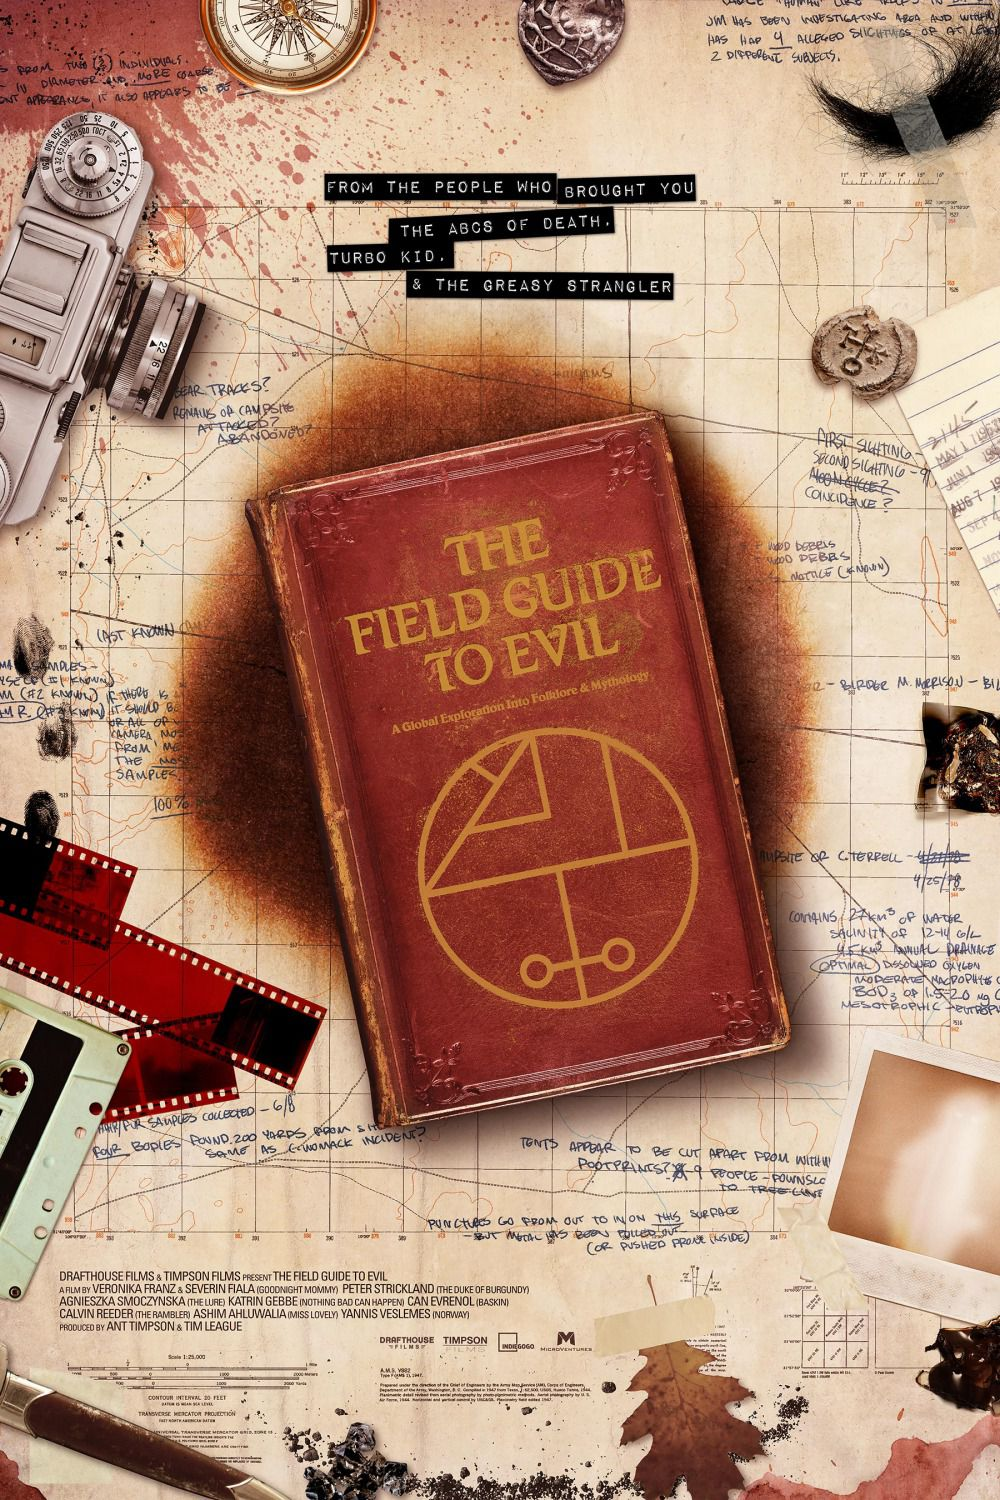 Field Guide to Evil - film poster book